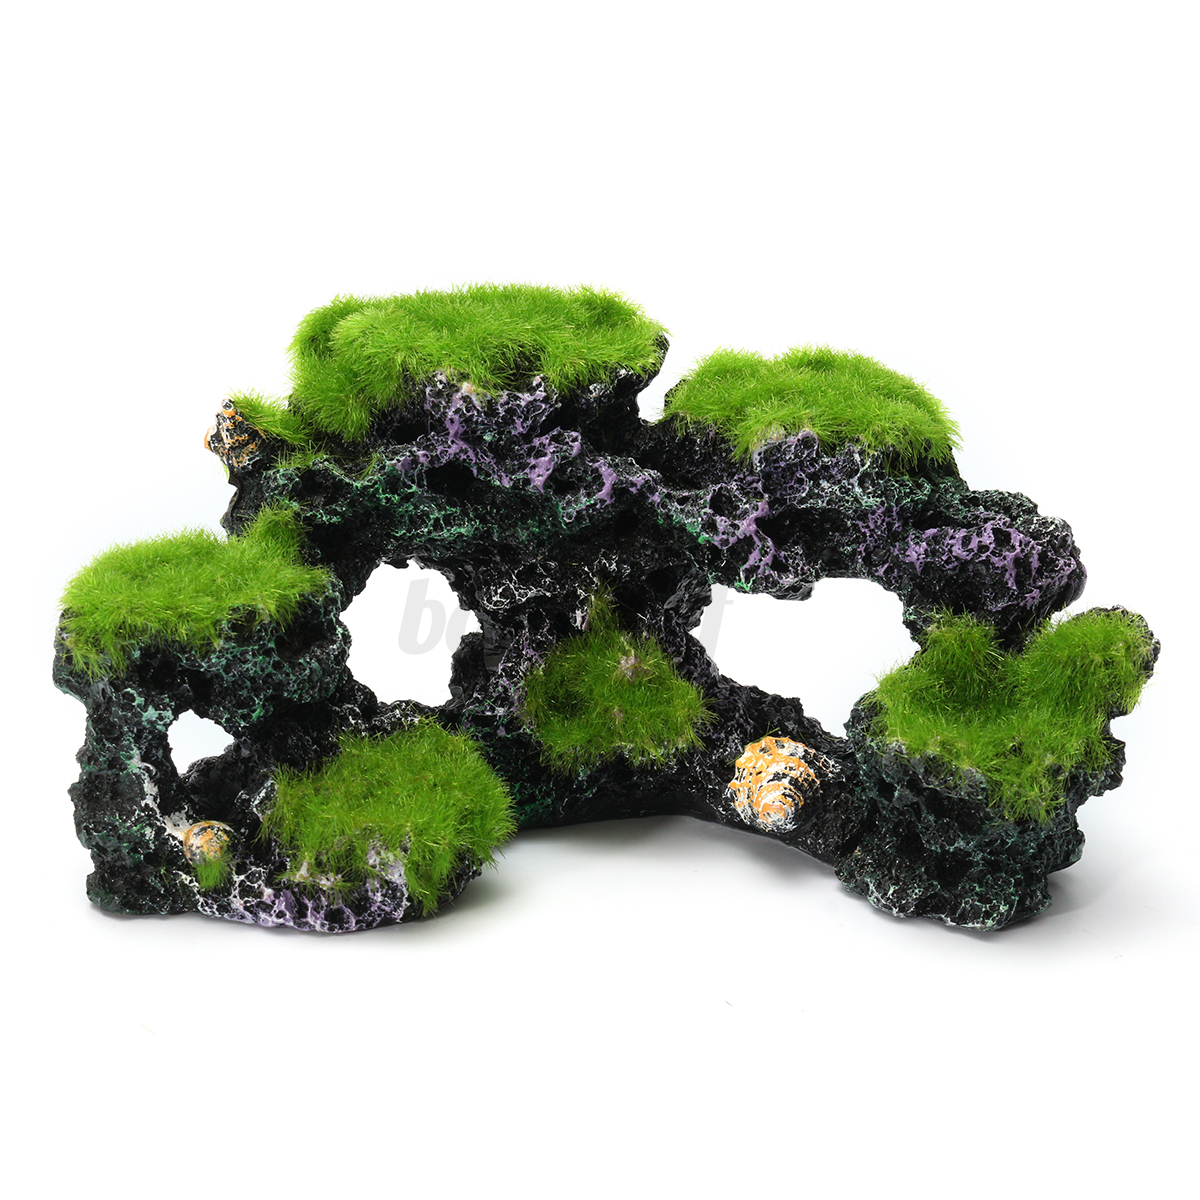 Aquarium mountain view coral reef rock cave stone moss for Aquarium stone decoration